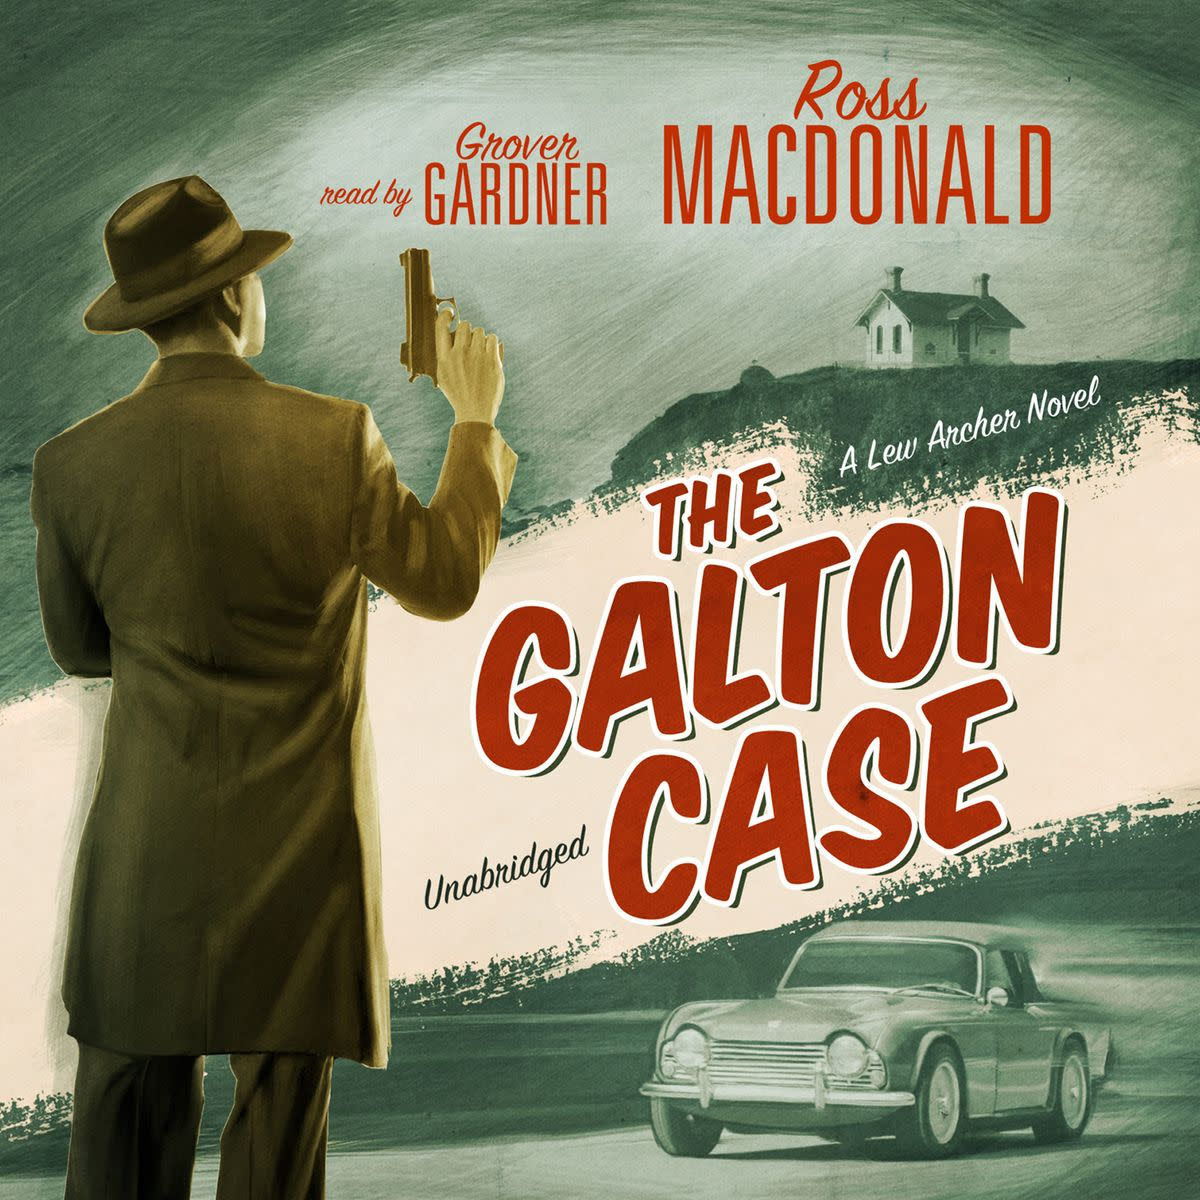 Review of the Galton Case